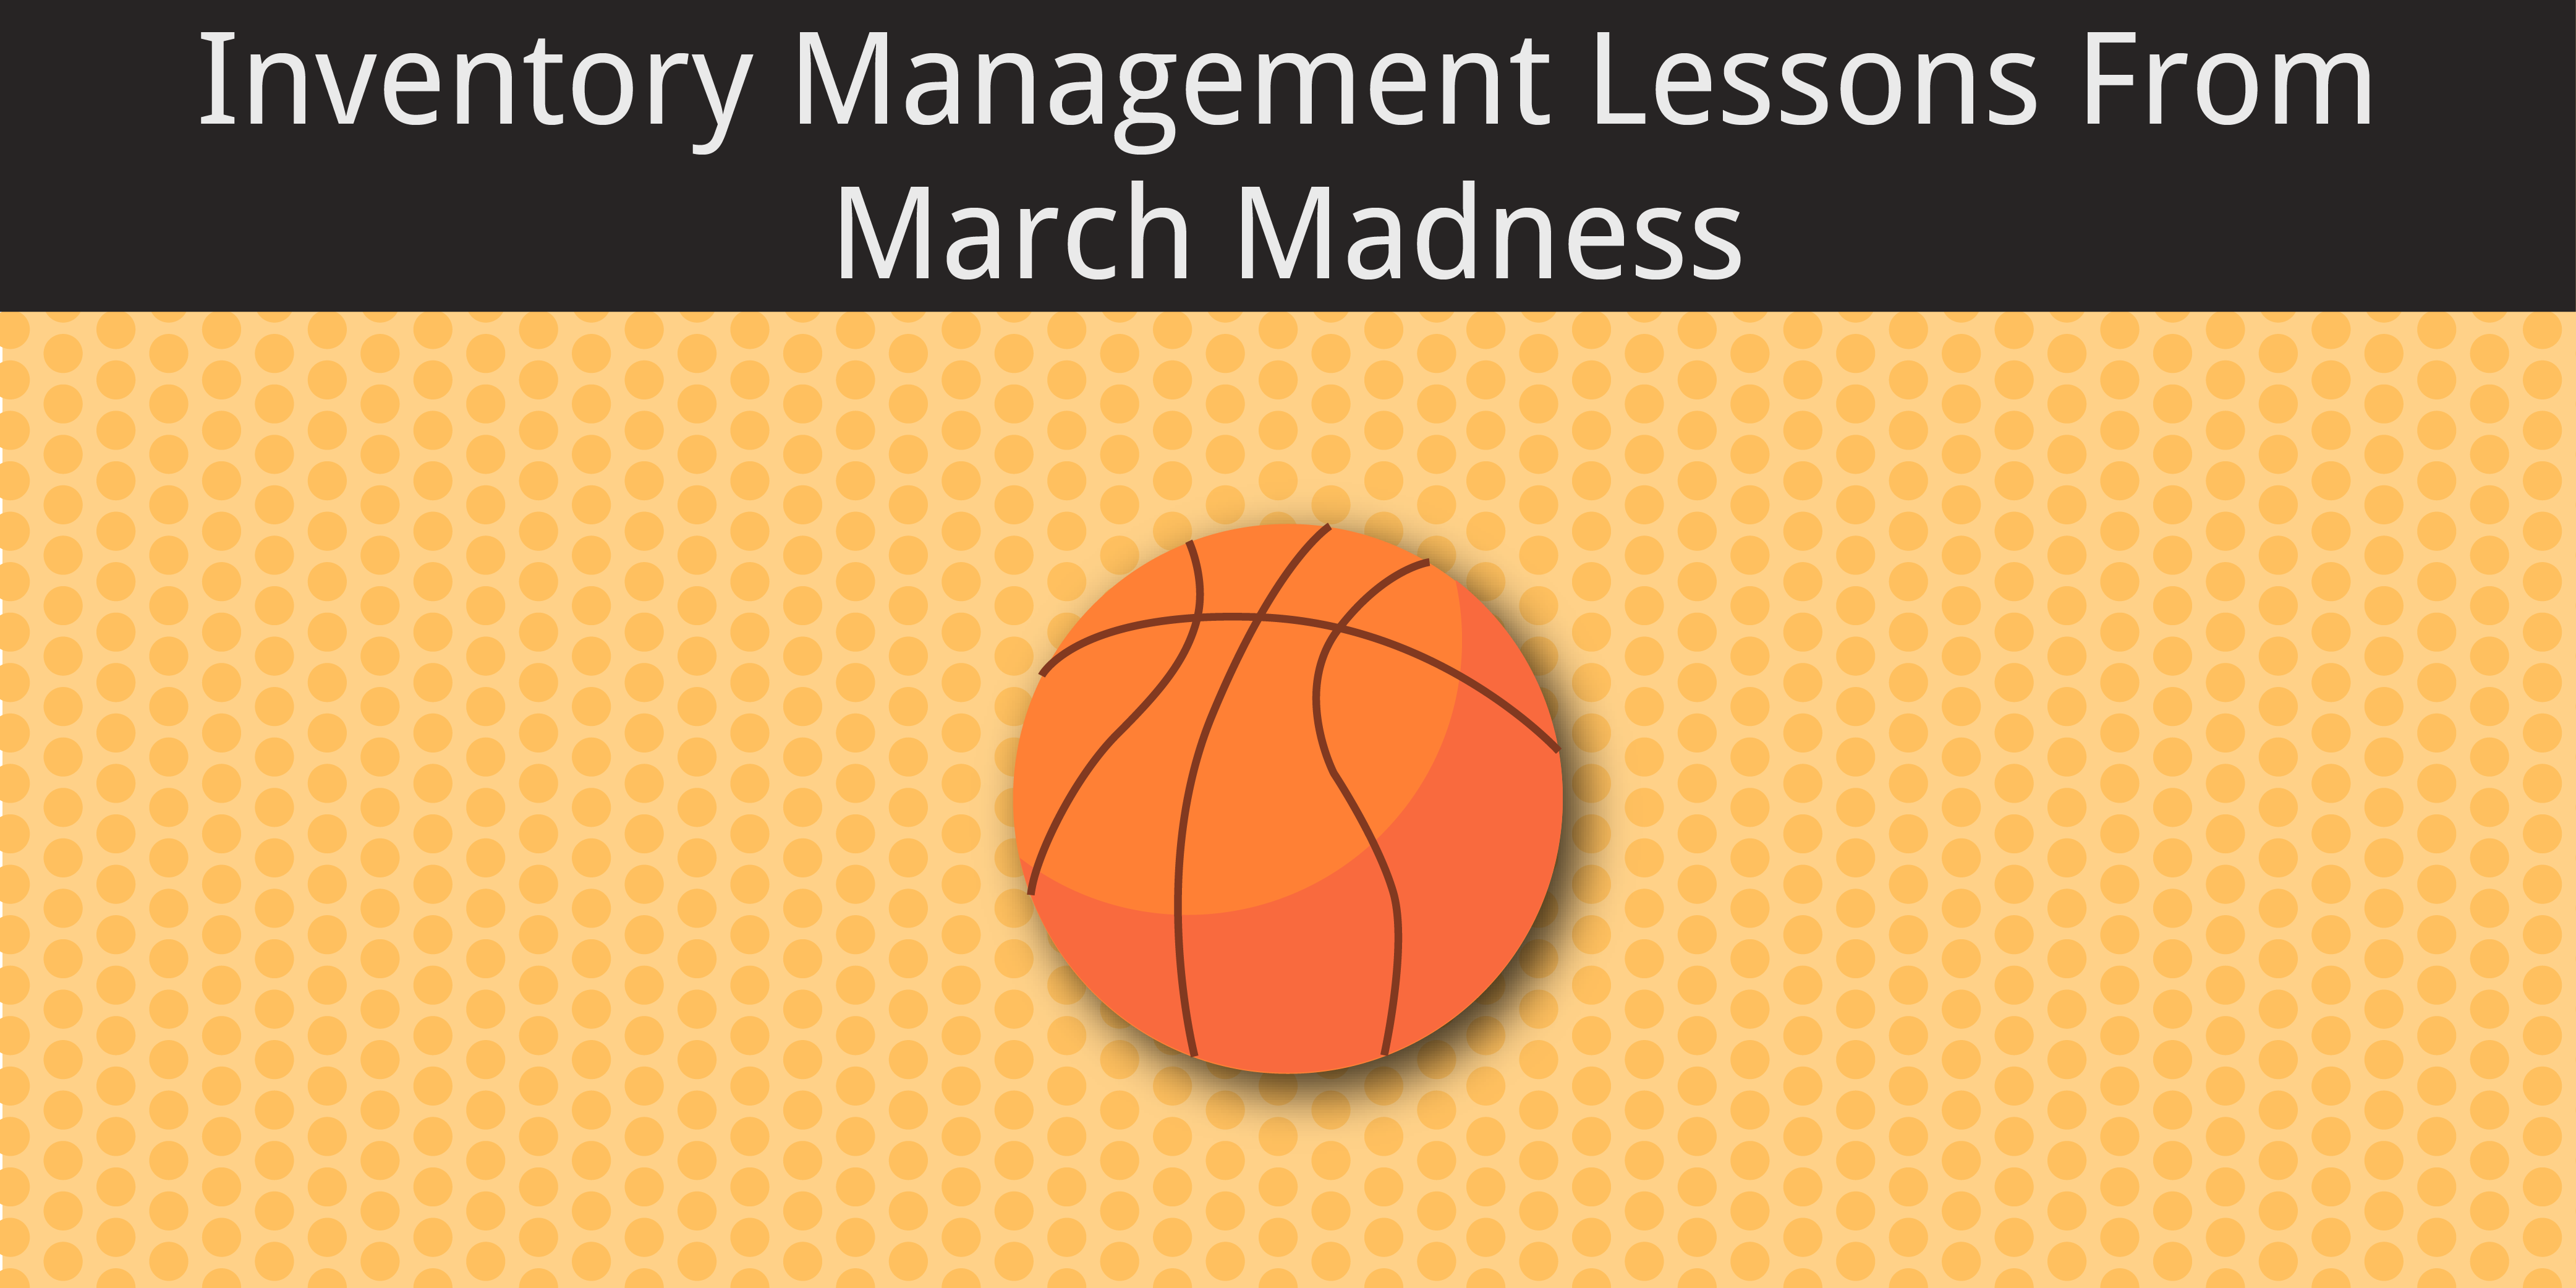 inventory-management-lessons-from-march-madness-01